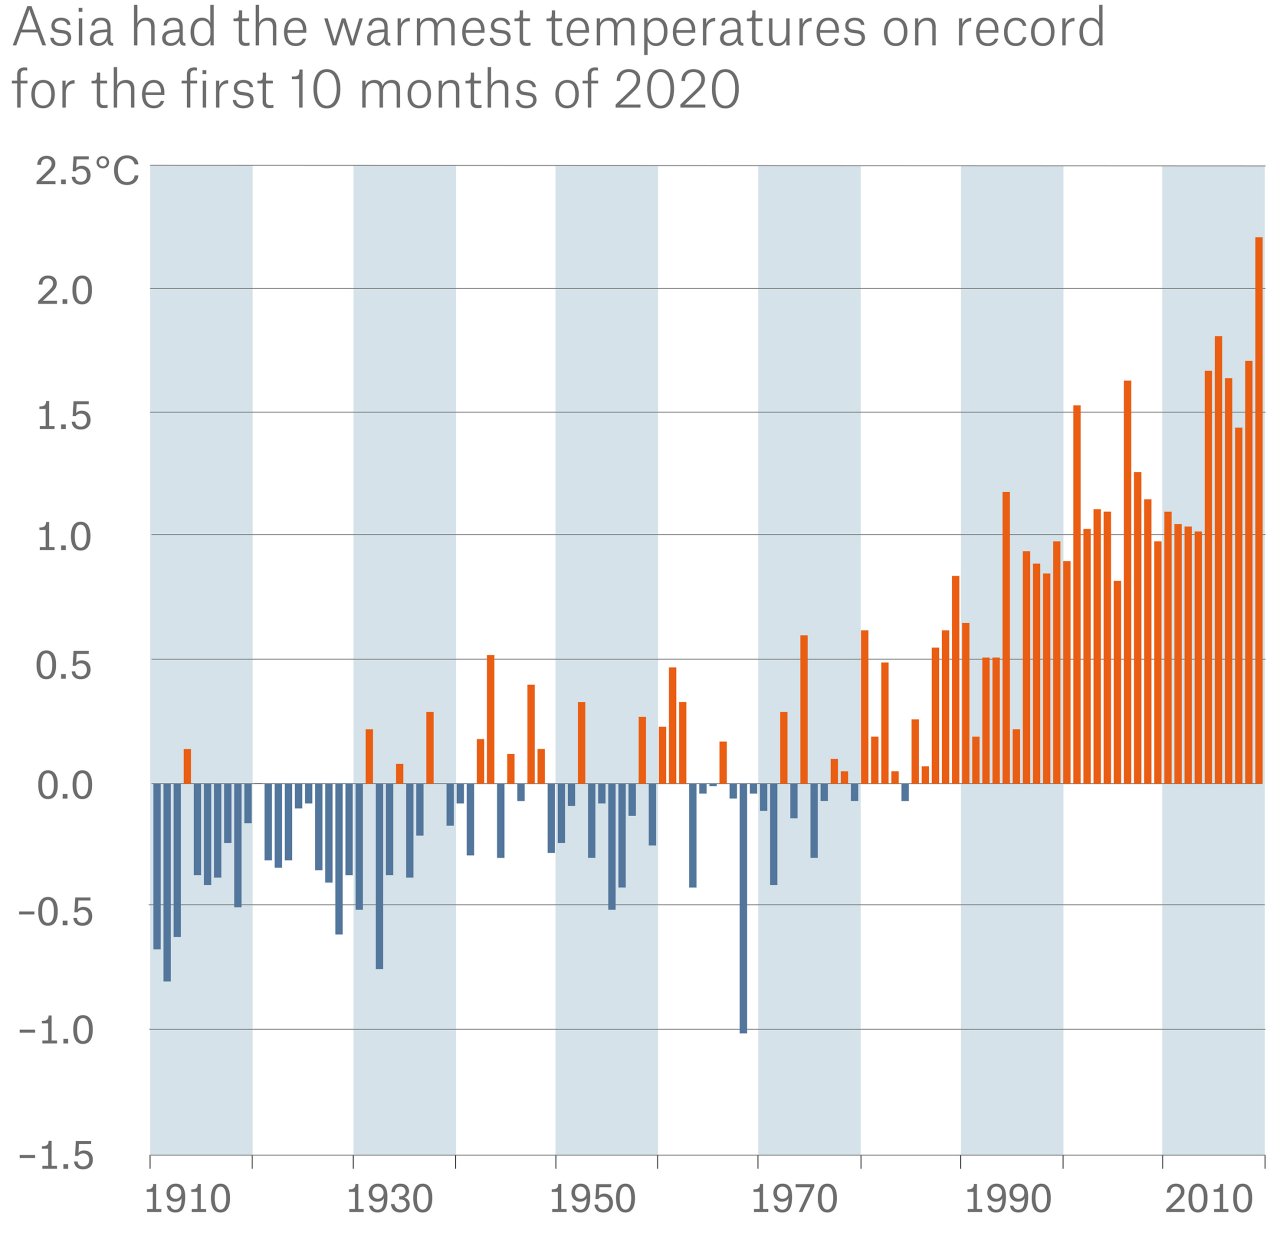 Asia had the warmest temperatures on record for the first 10 months of 2020